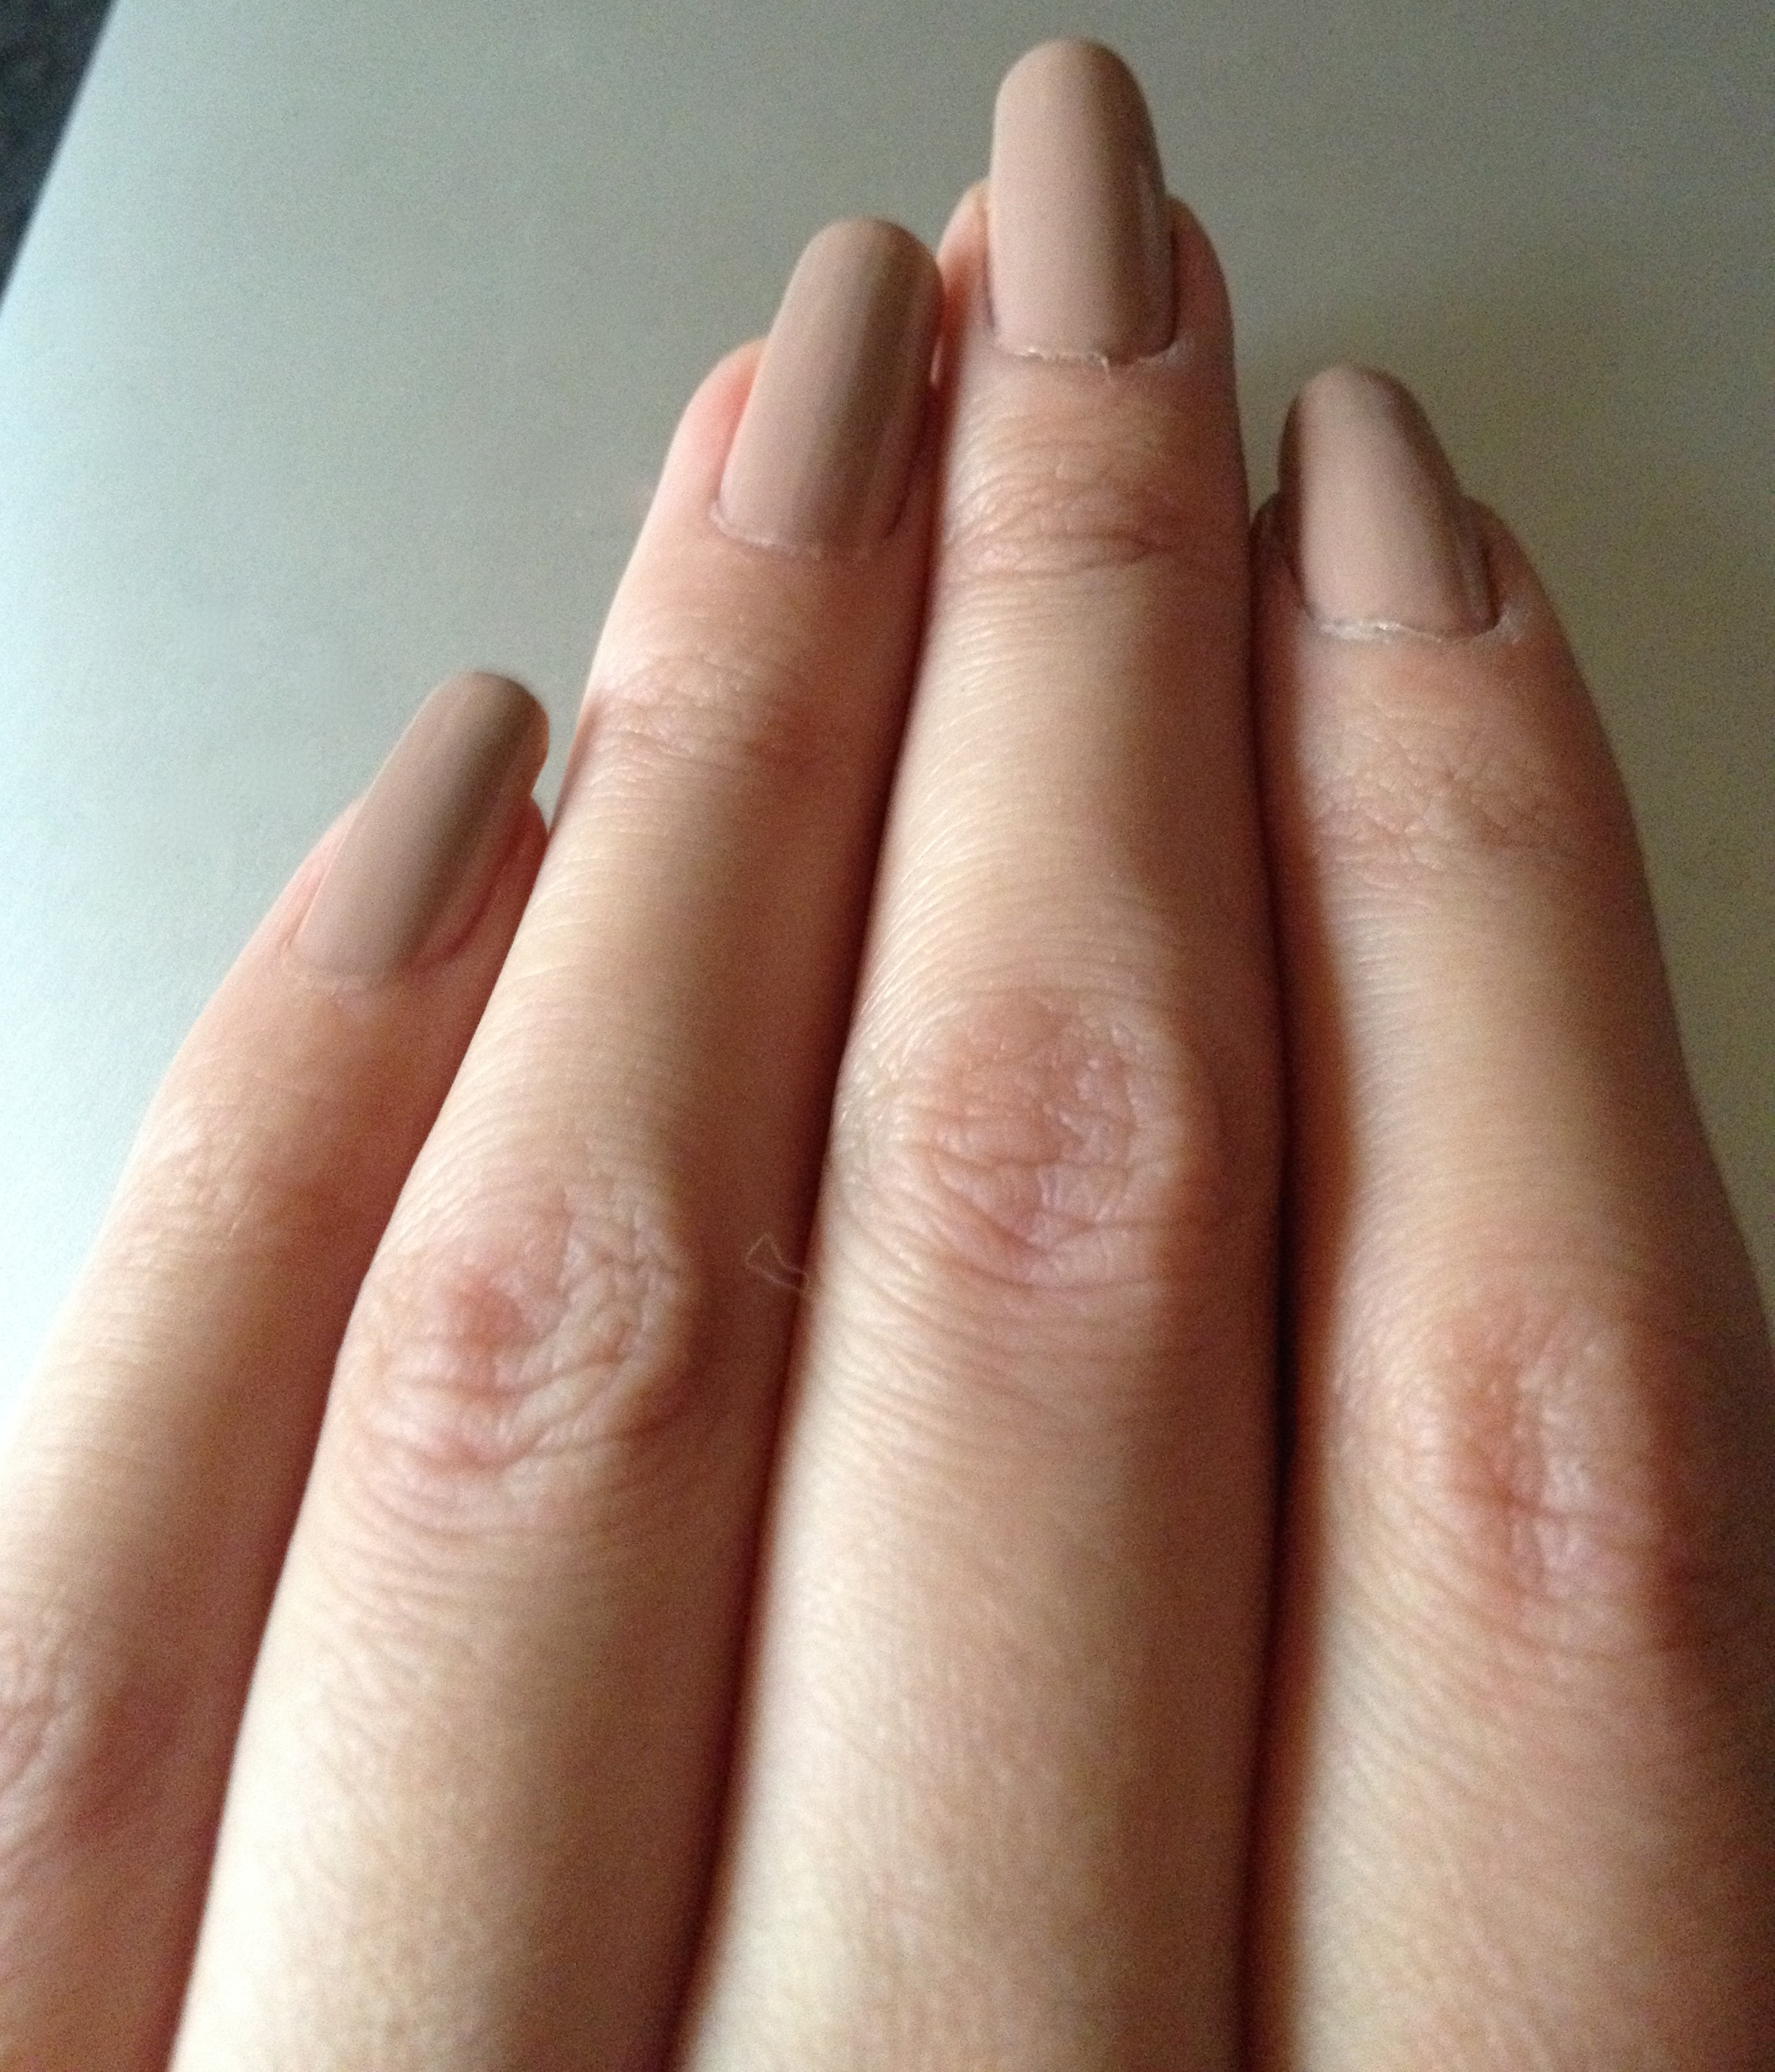 This new formula of Dior nail polishes is clearly an improvement. It\u0027s  better than what it used to be. The application is easier. Looks good and  comfortable